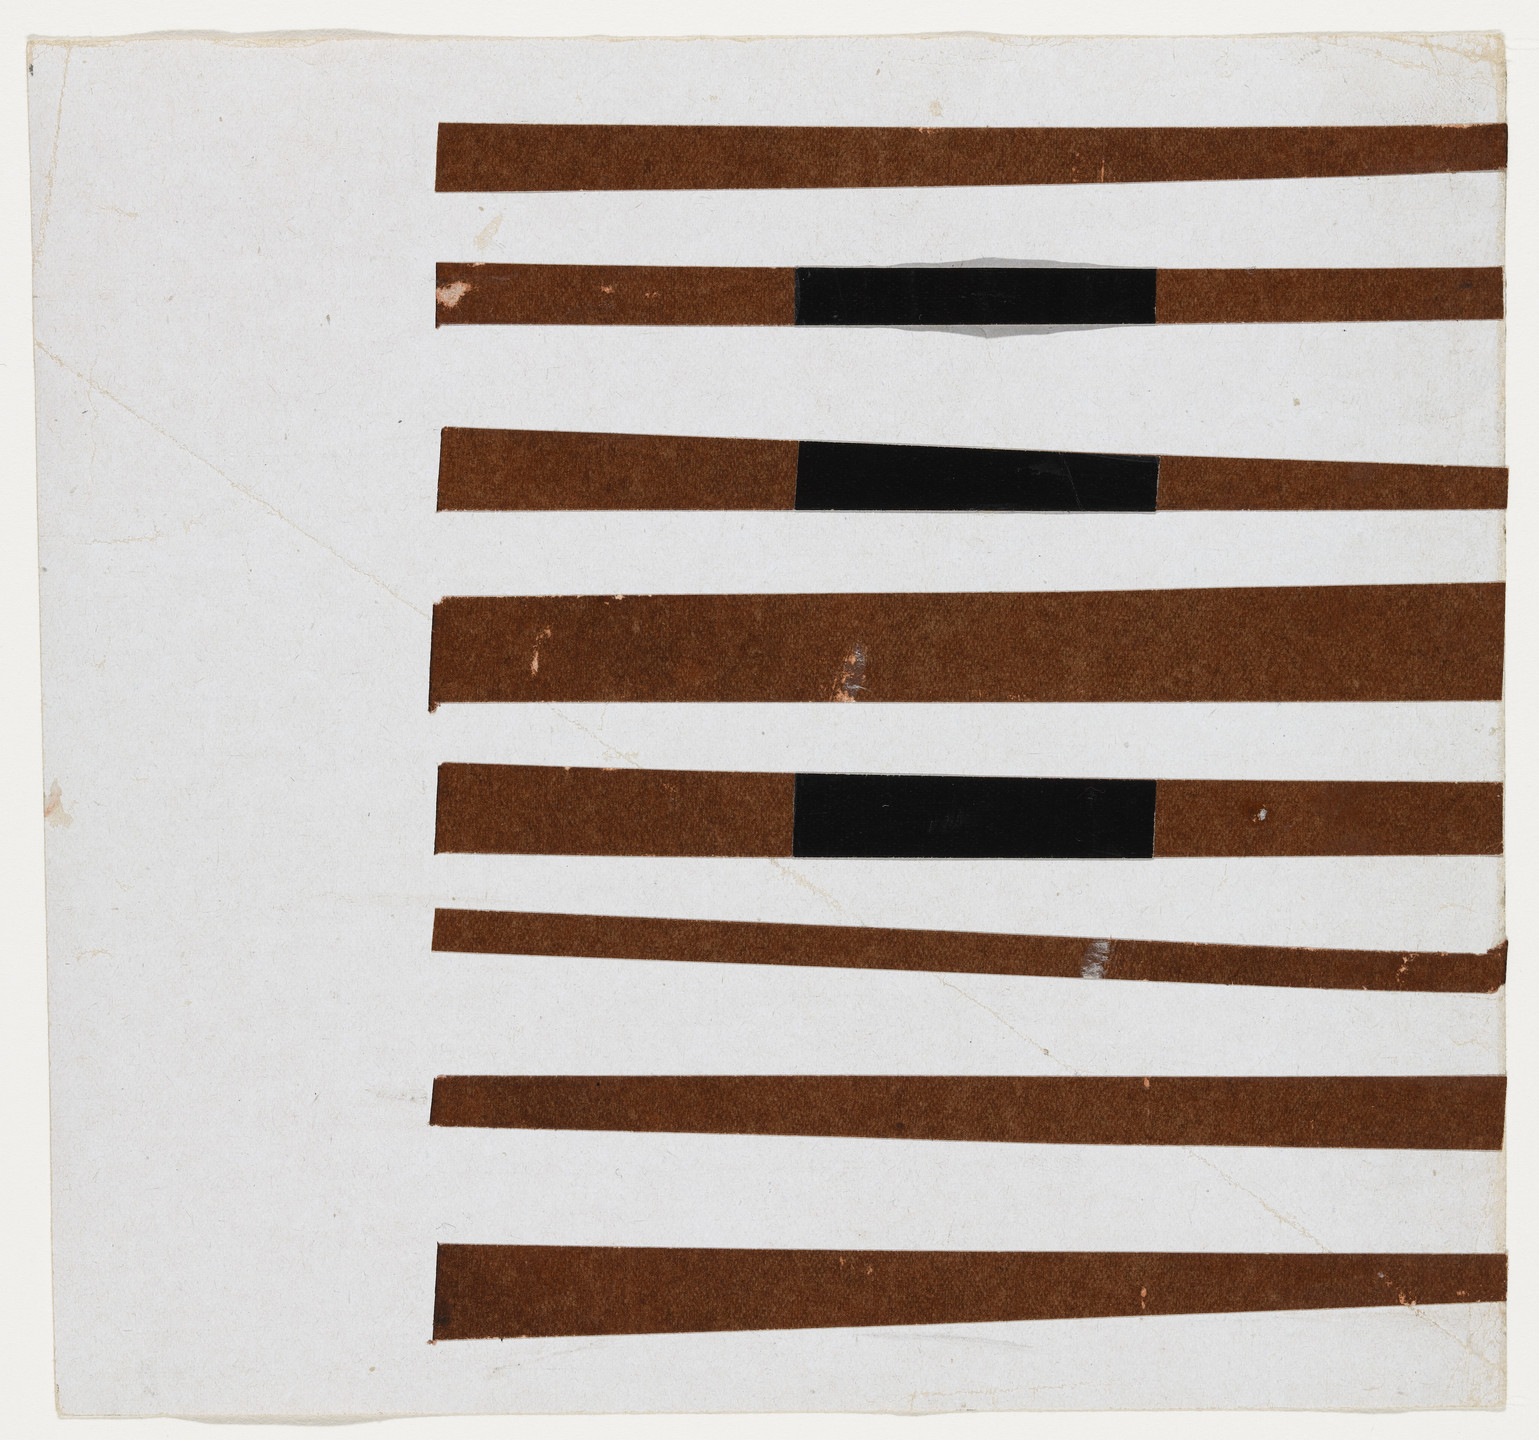 Ellsworth Kelly. Black, Brown, White. 1951